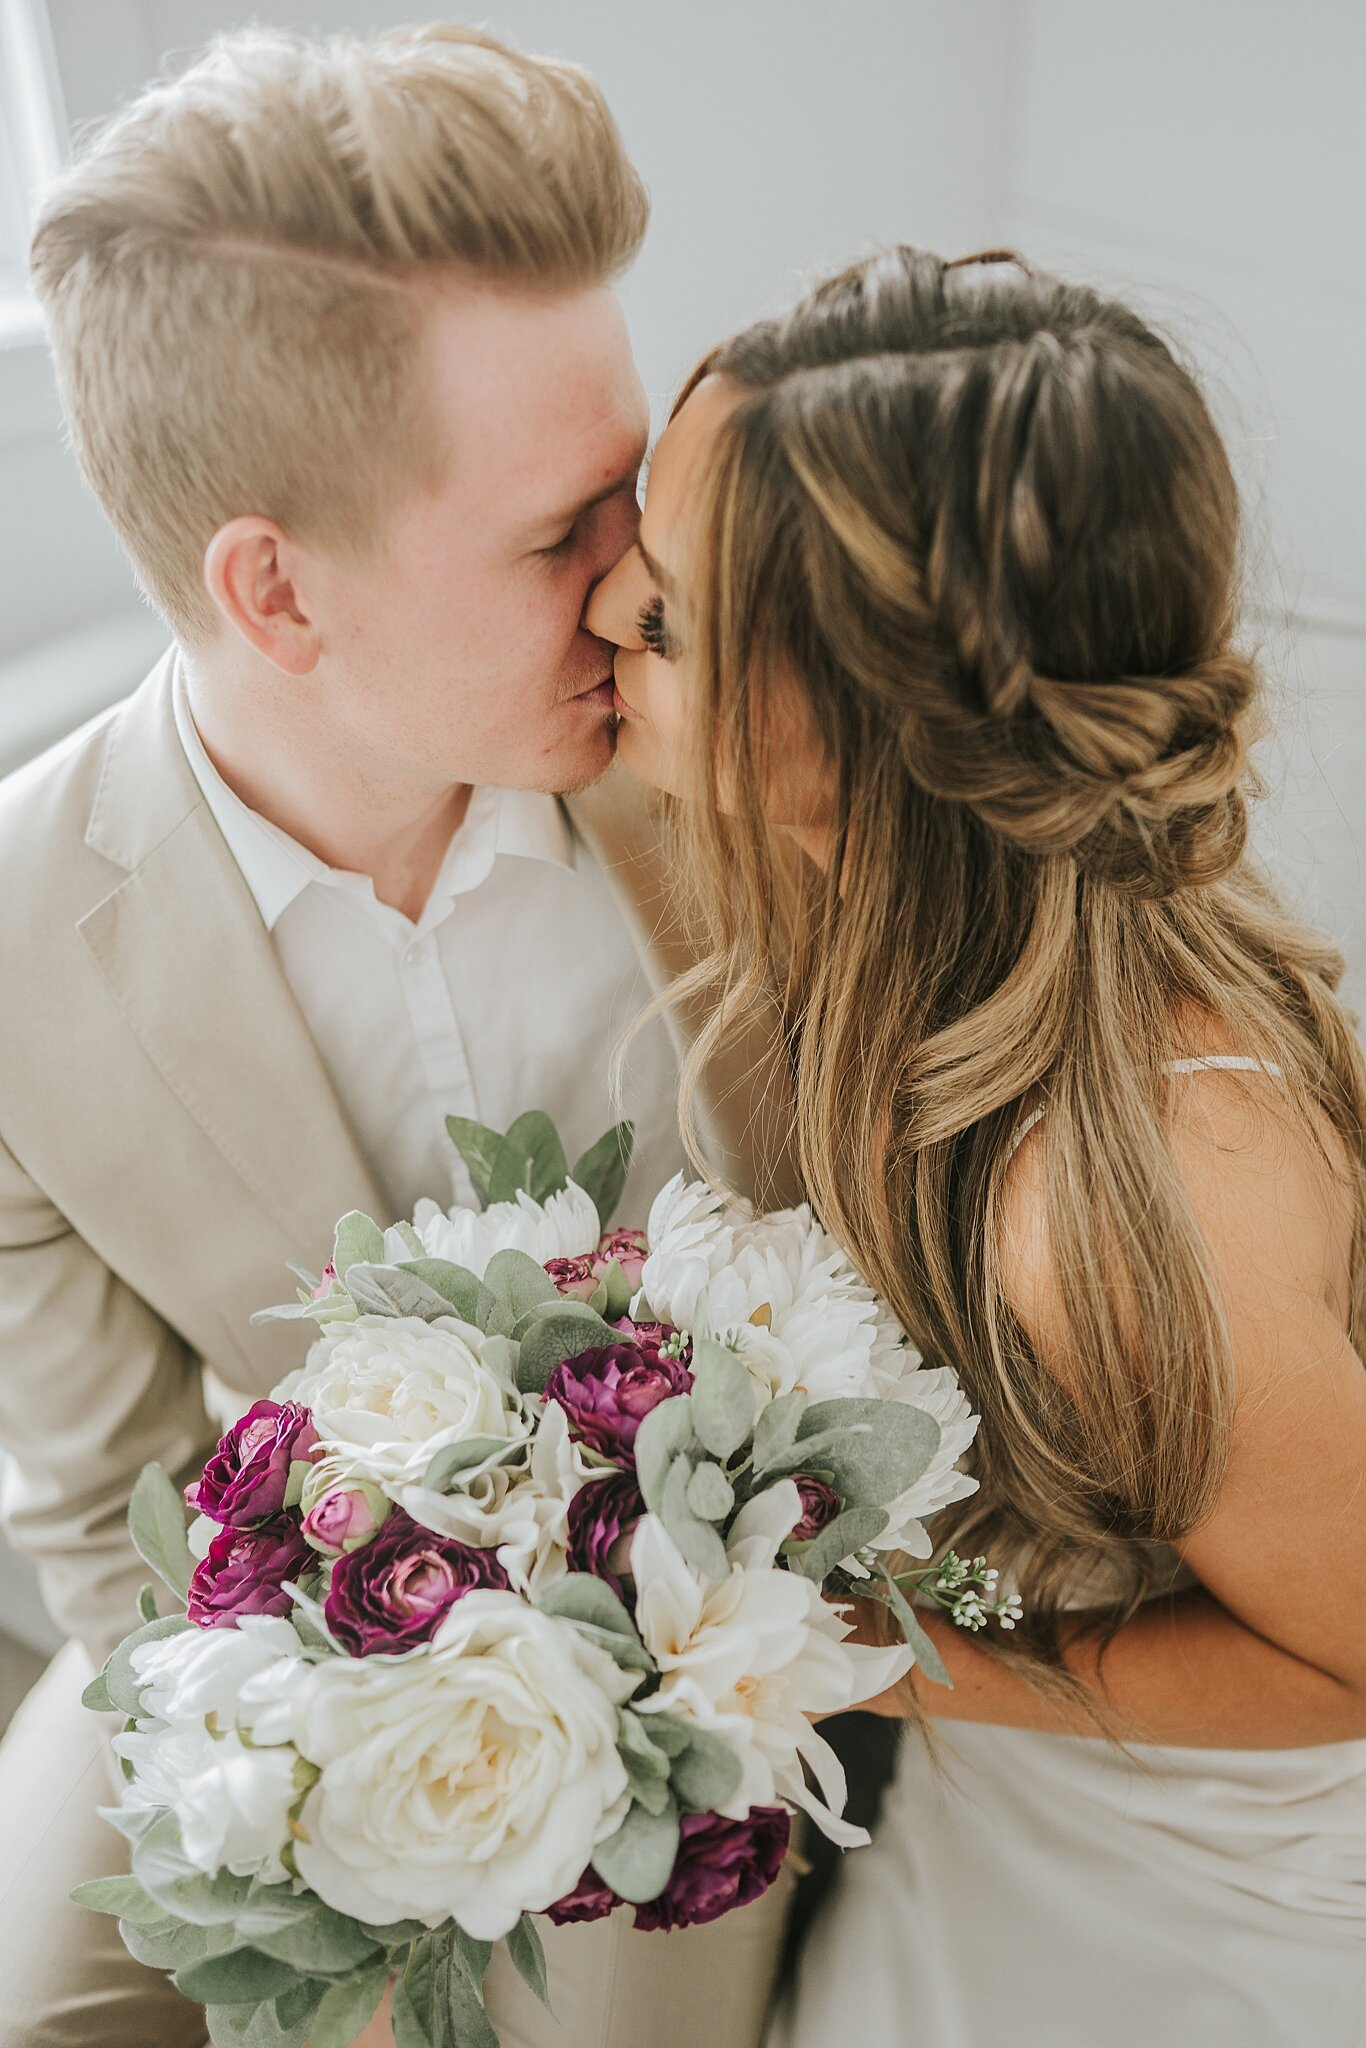 boho-chic-elopement-shoot-knoxville-bride-summertime-wedding-look-for-the-light-photo-video